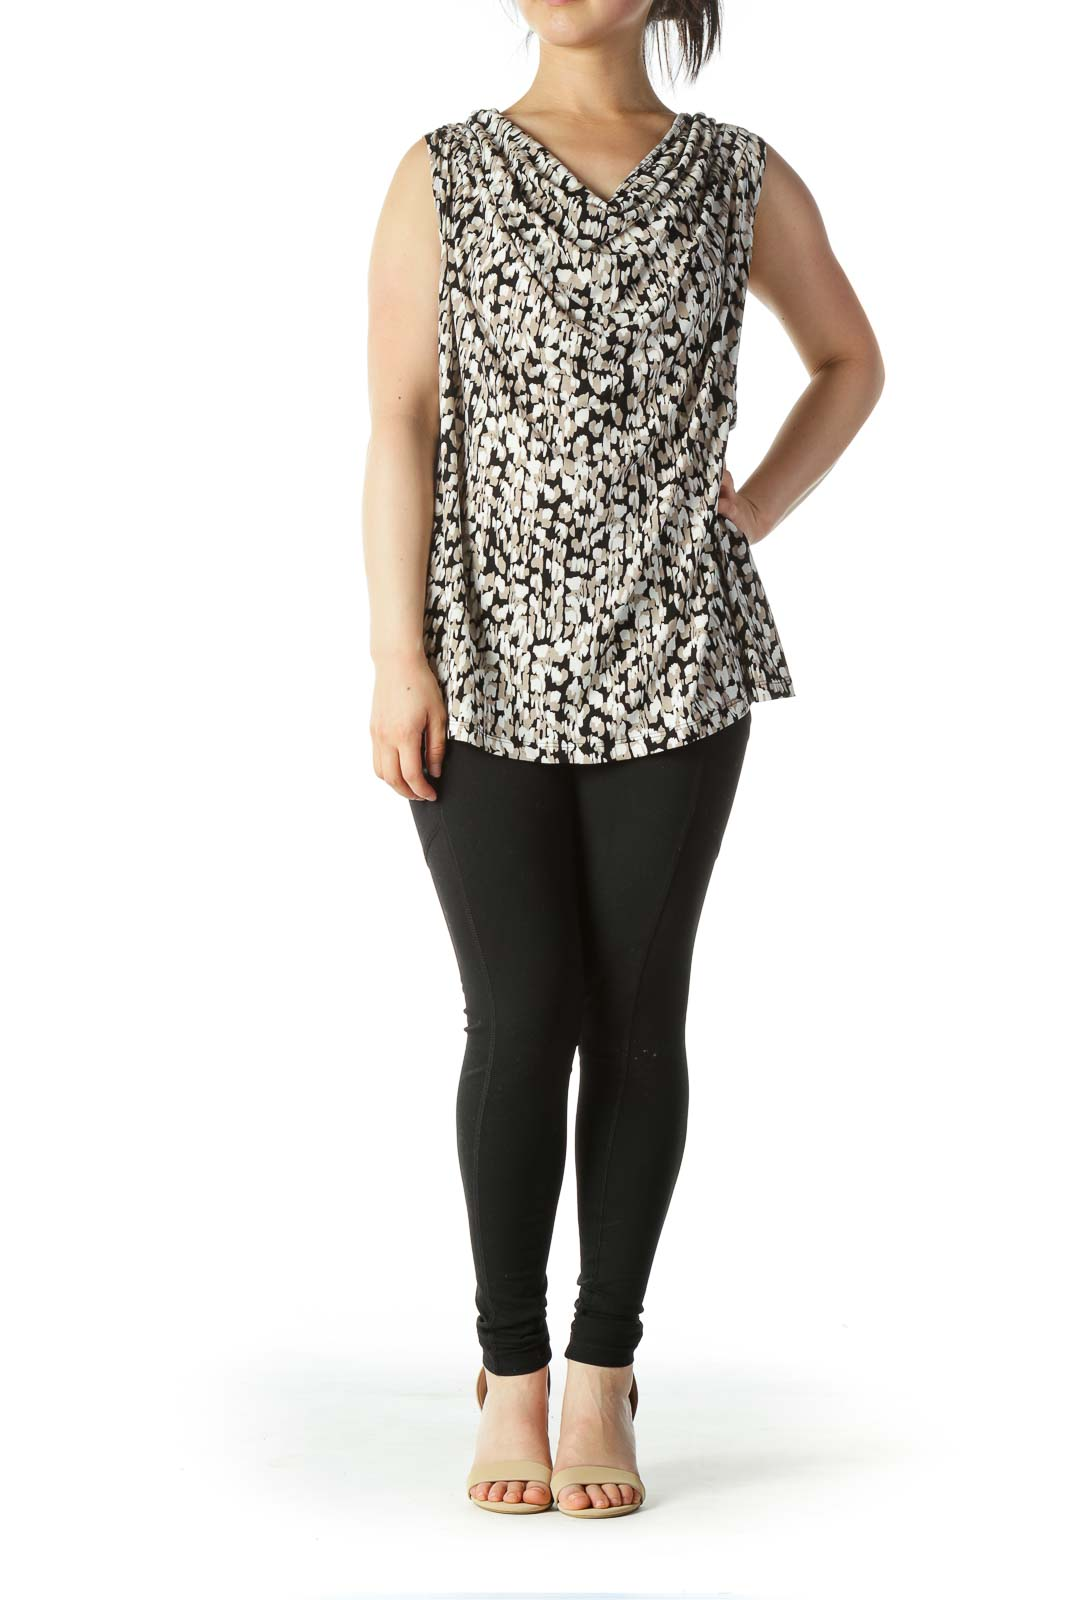 Black Beige White Print Stretch Jewel Neckline Tank